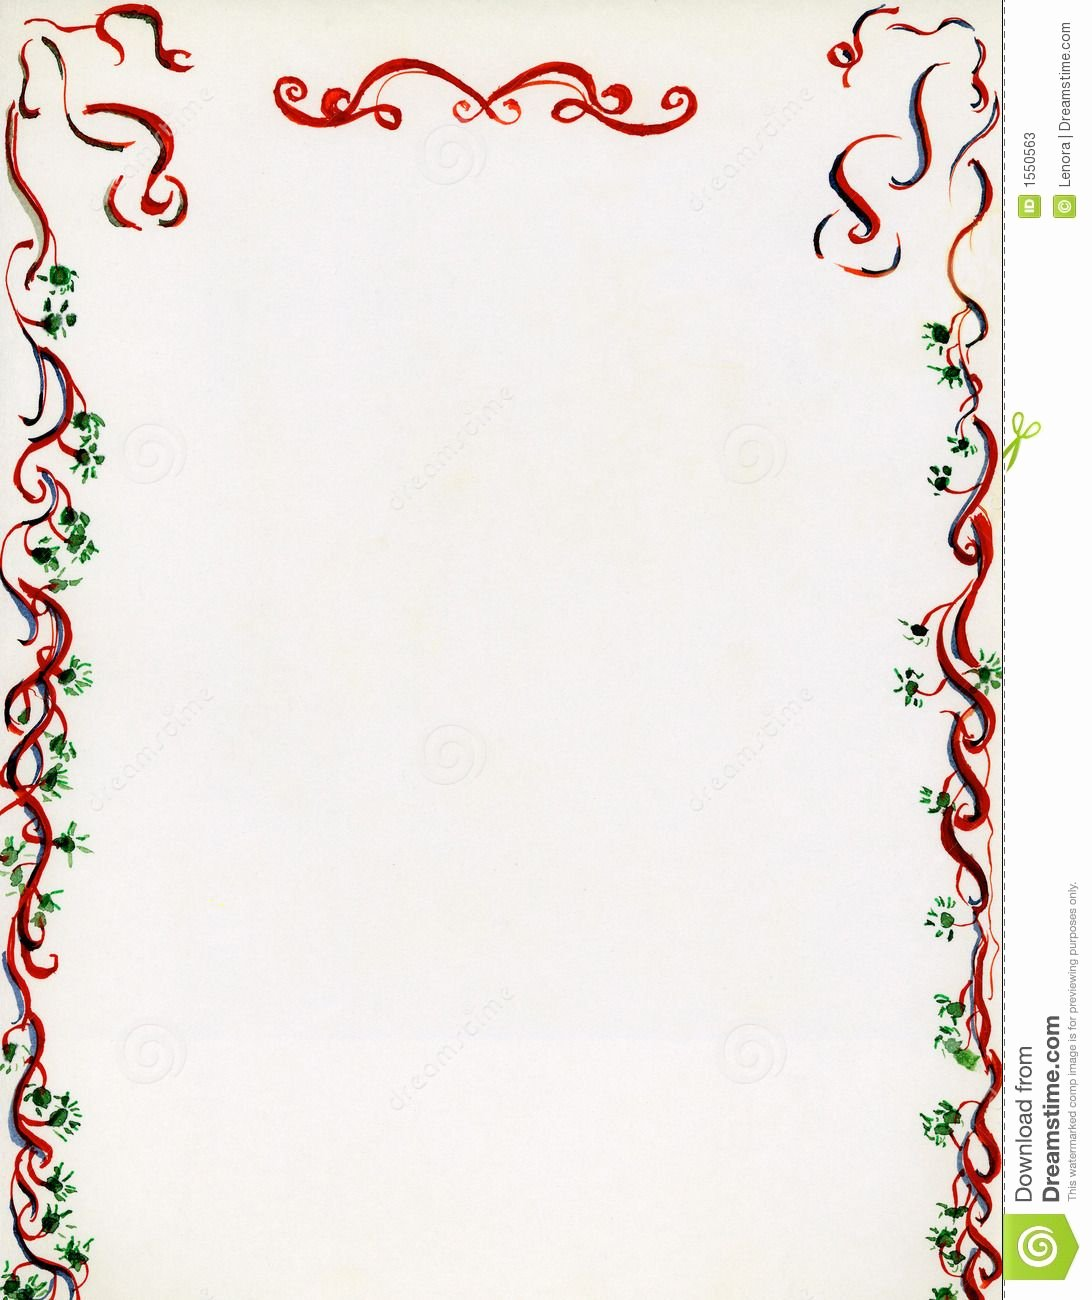 Christmas Stationery for Word Elegant Christmas Letterhead Templates for Word